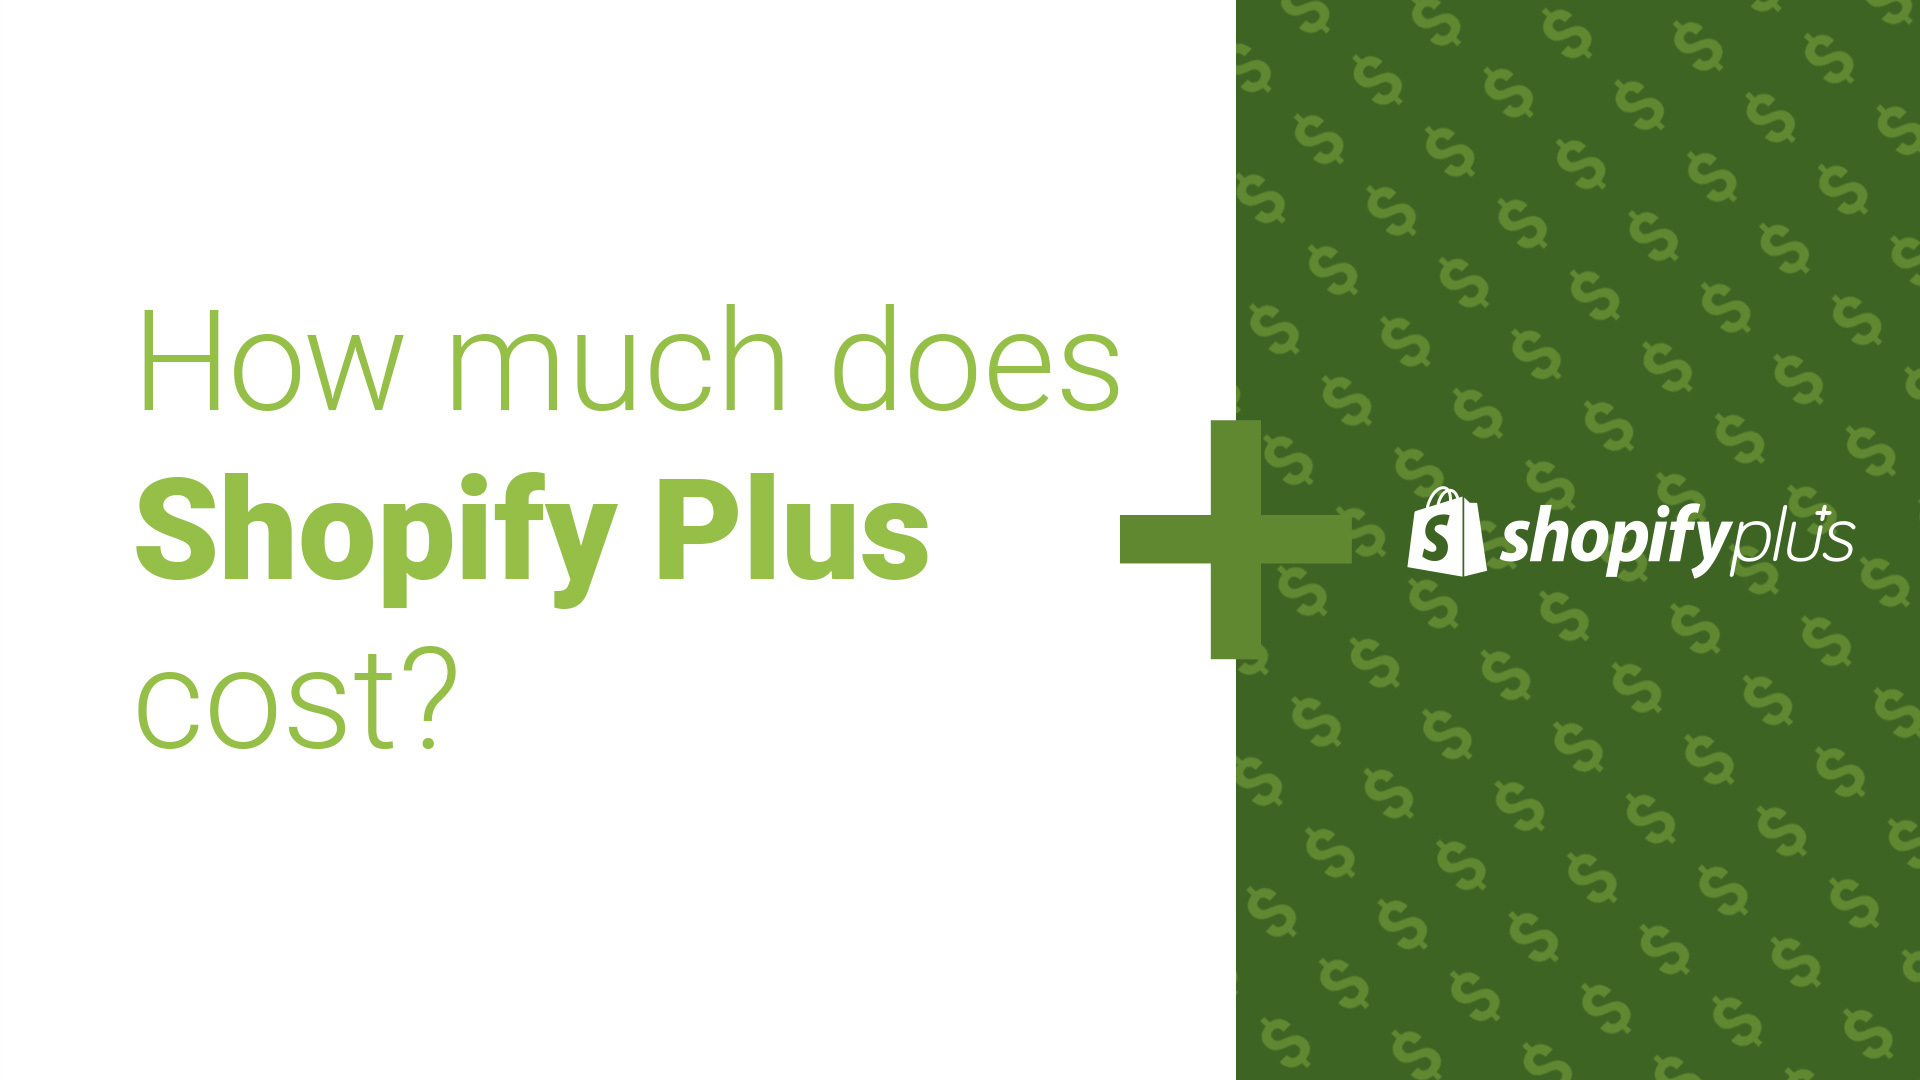 How Much Does Shopify Plus Cost?